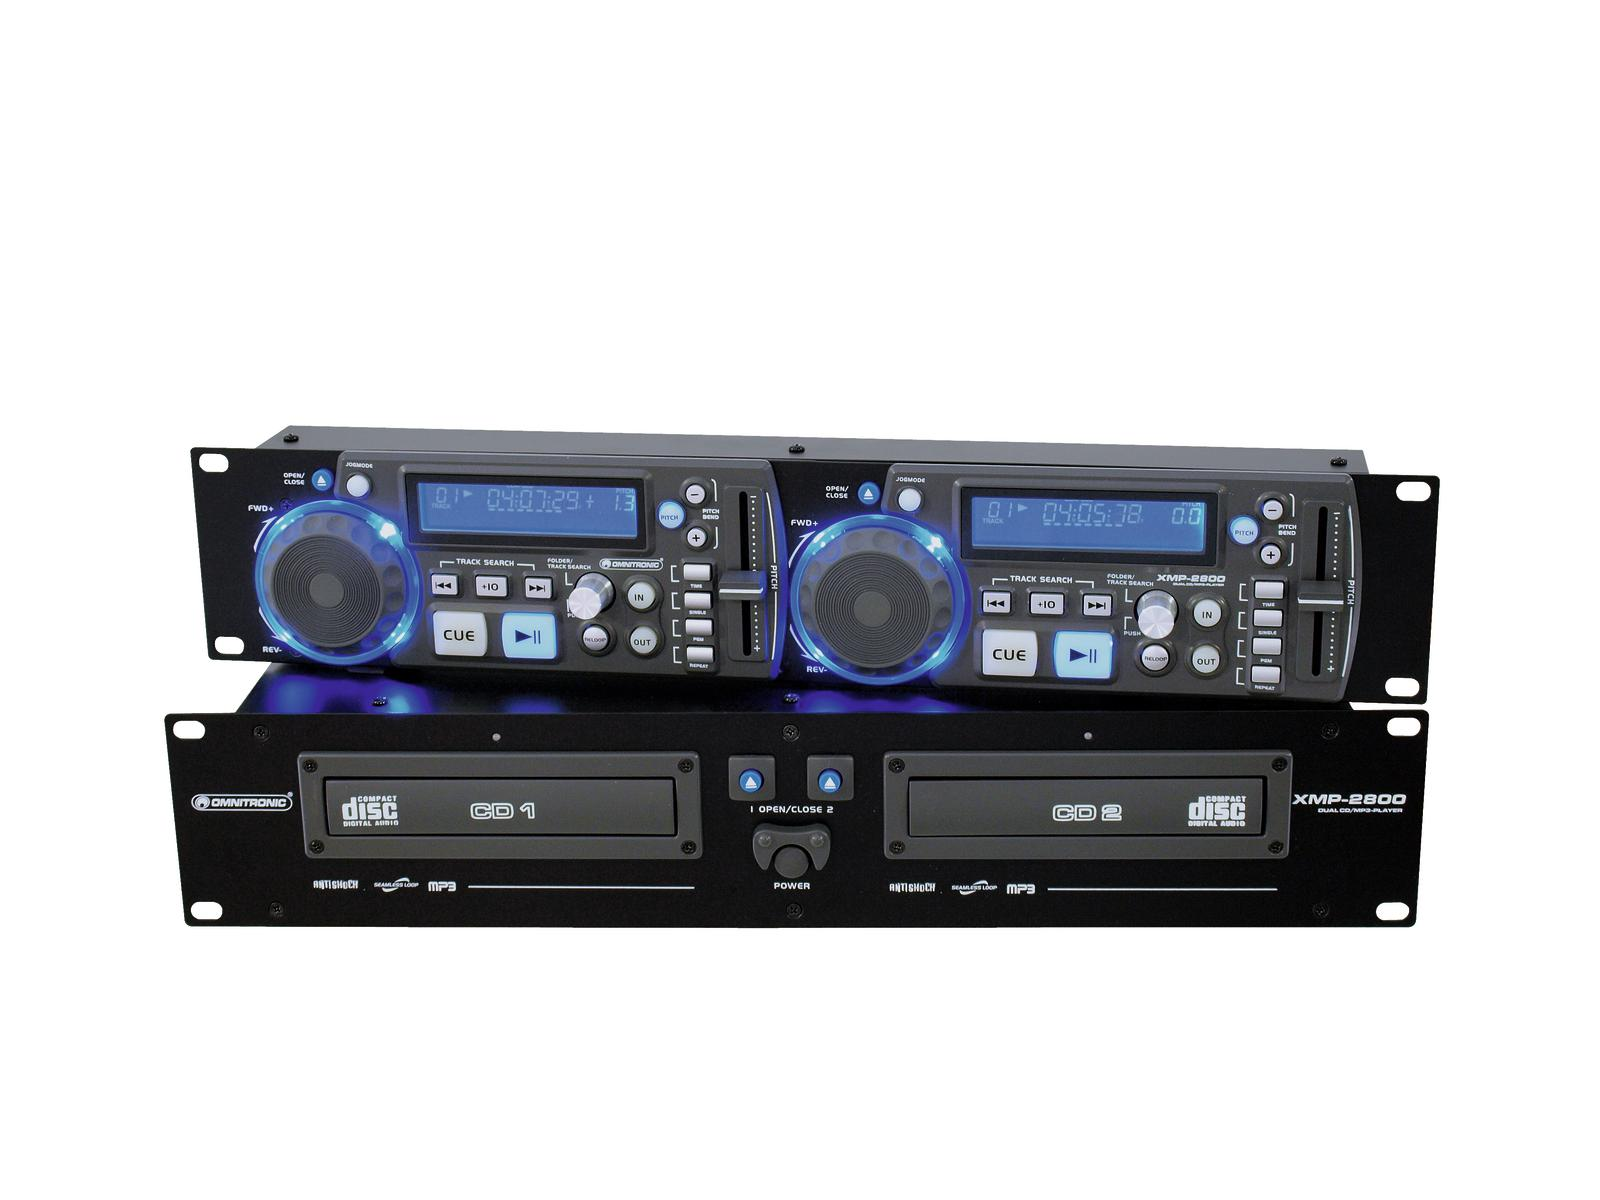 omnitronic-xmp-2800-dual-cd-mp3-player